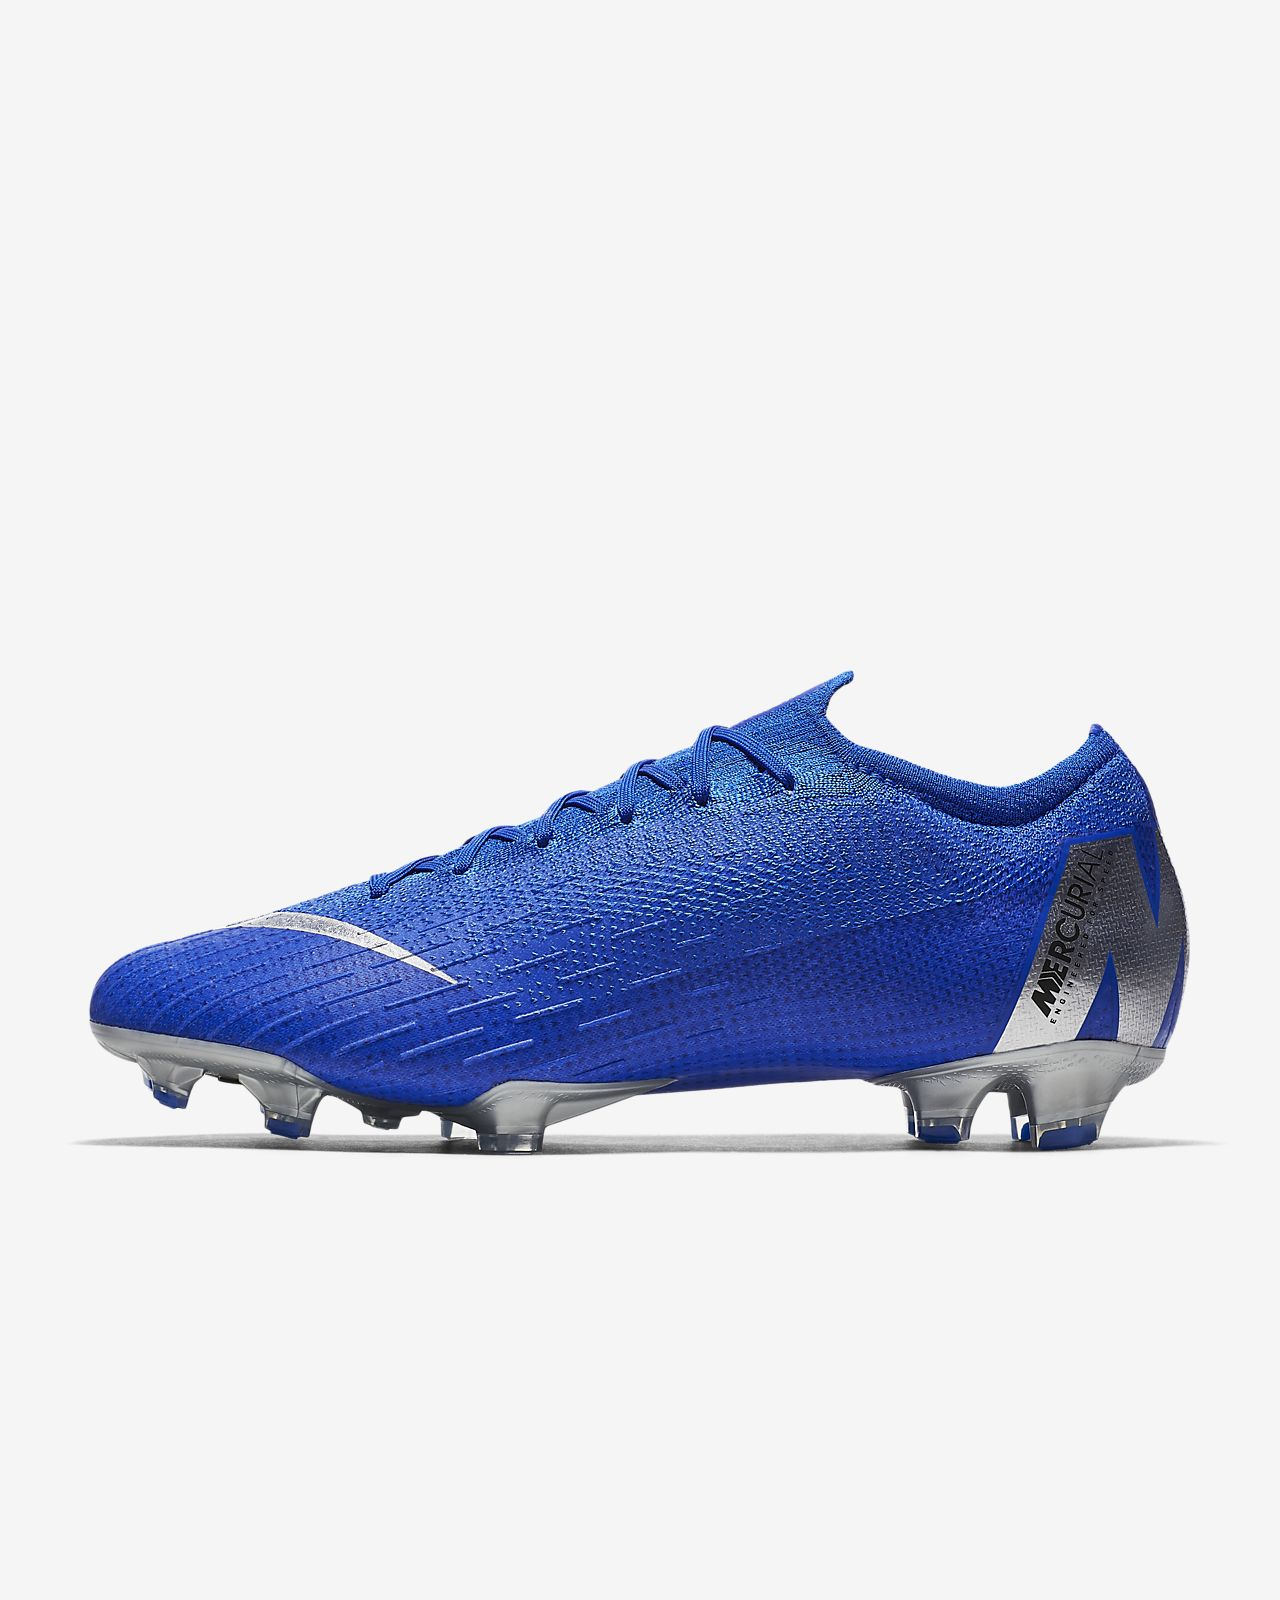 Nike Vapor 12 Elite FG Firm-Ground Football Boot